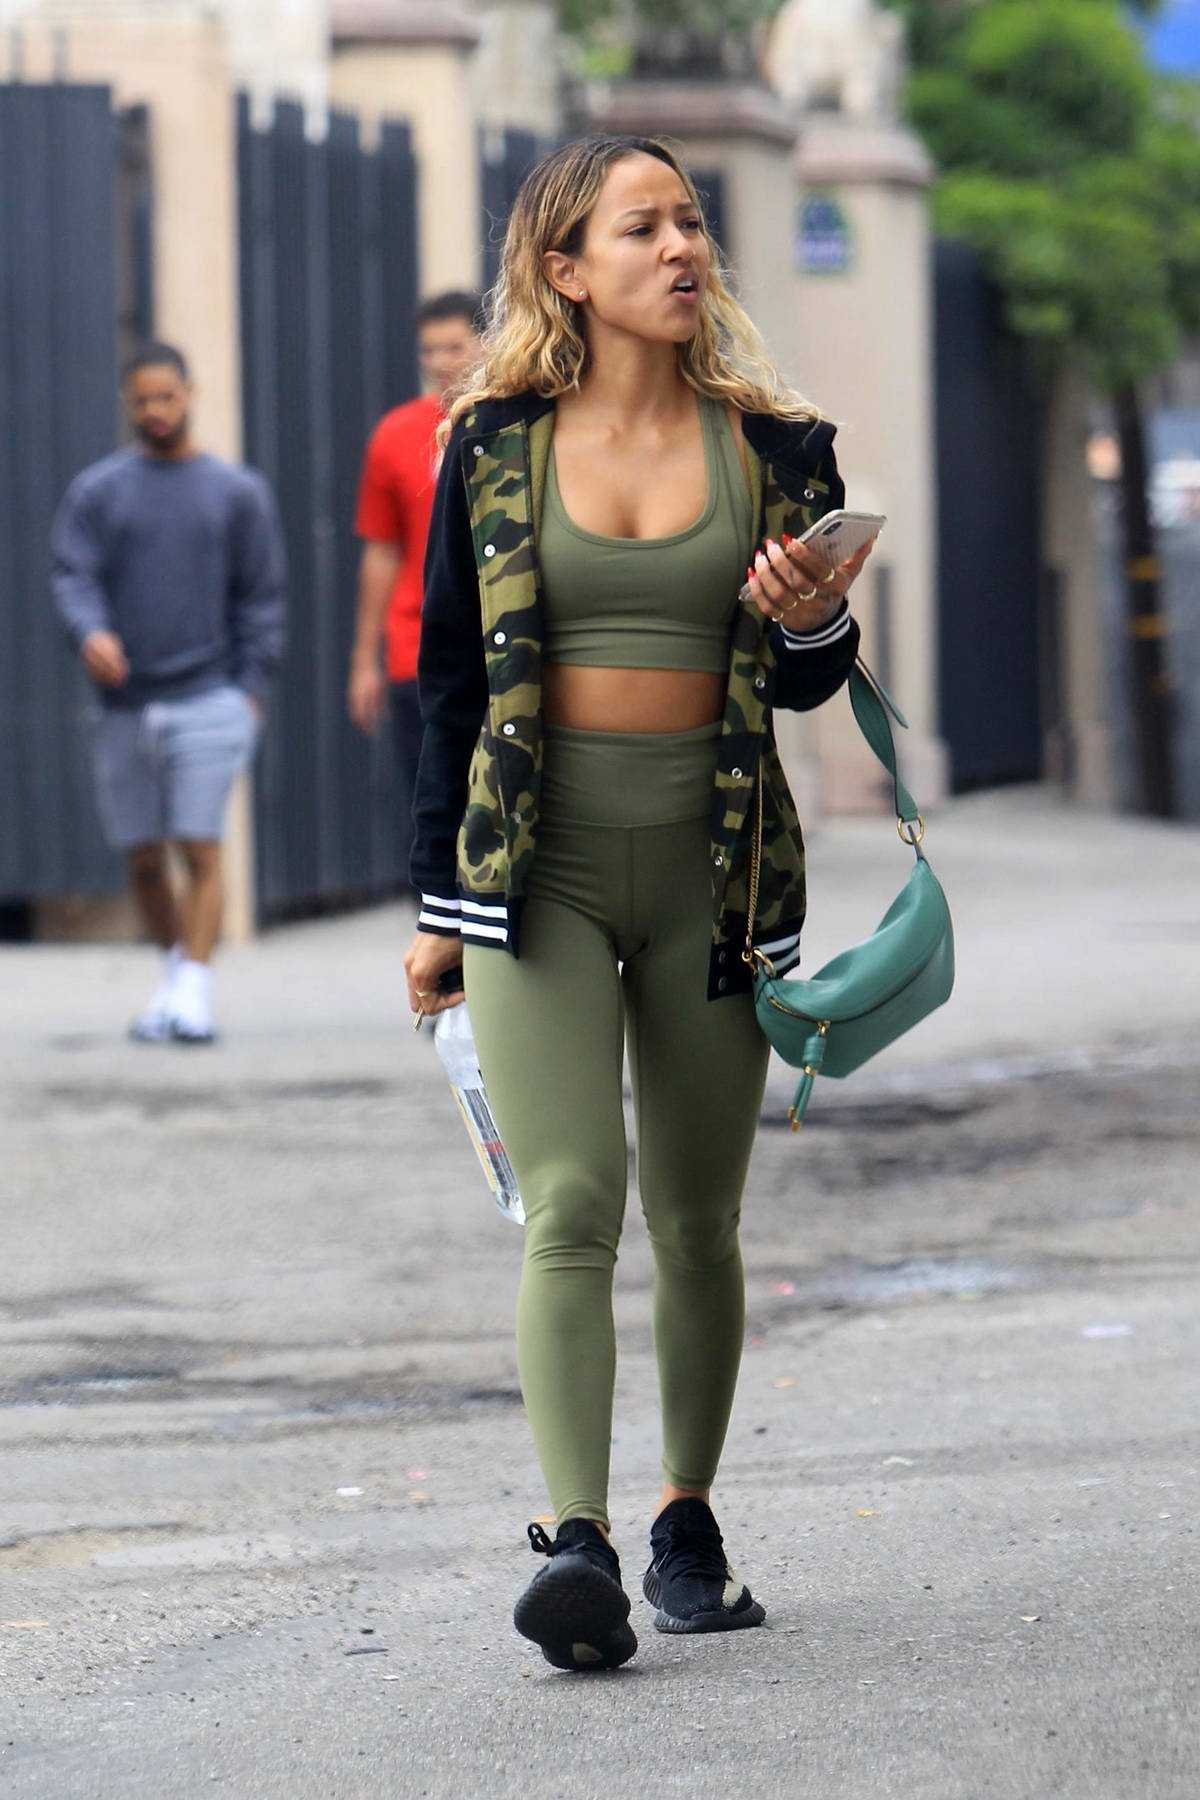 Karrueche Tran heads for a workout in all green athleisure in Beverly Hills, Los Angeles